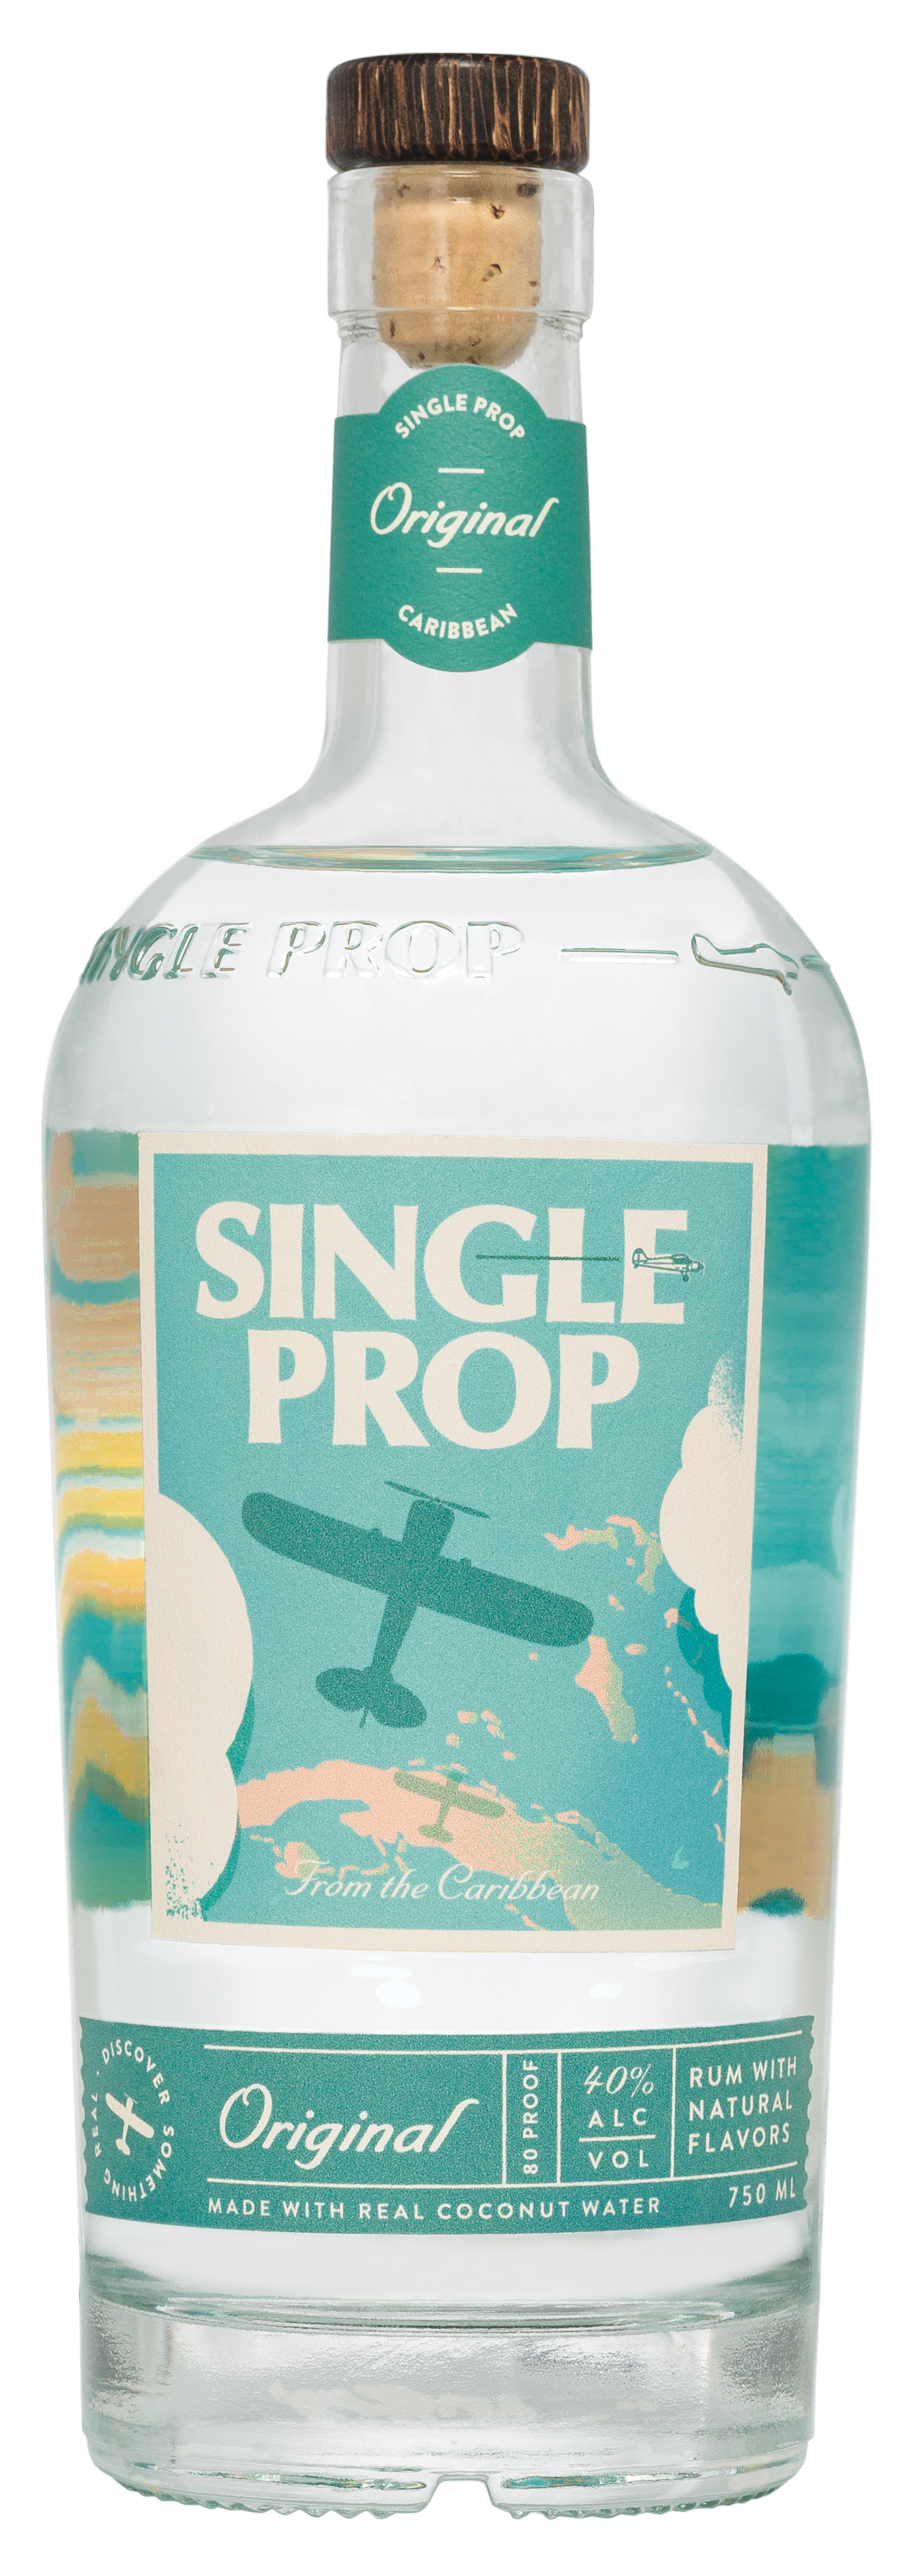 Single Prop Original bottle shot.png